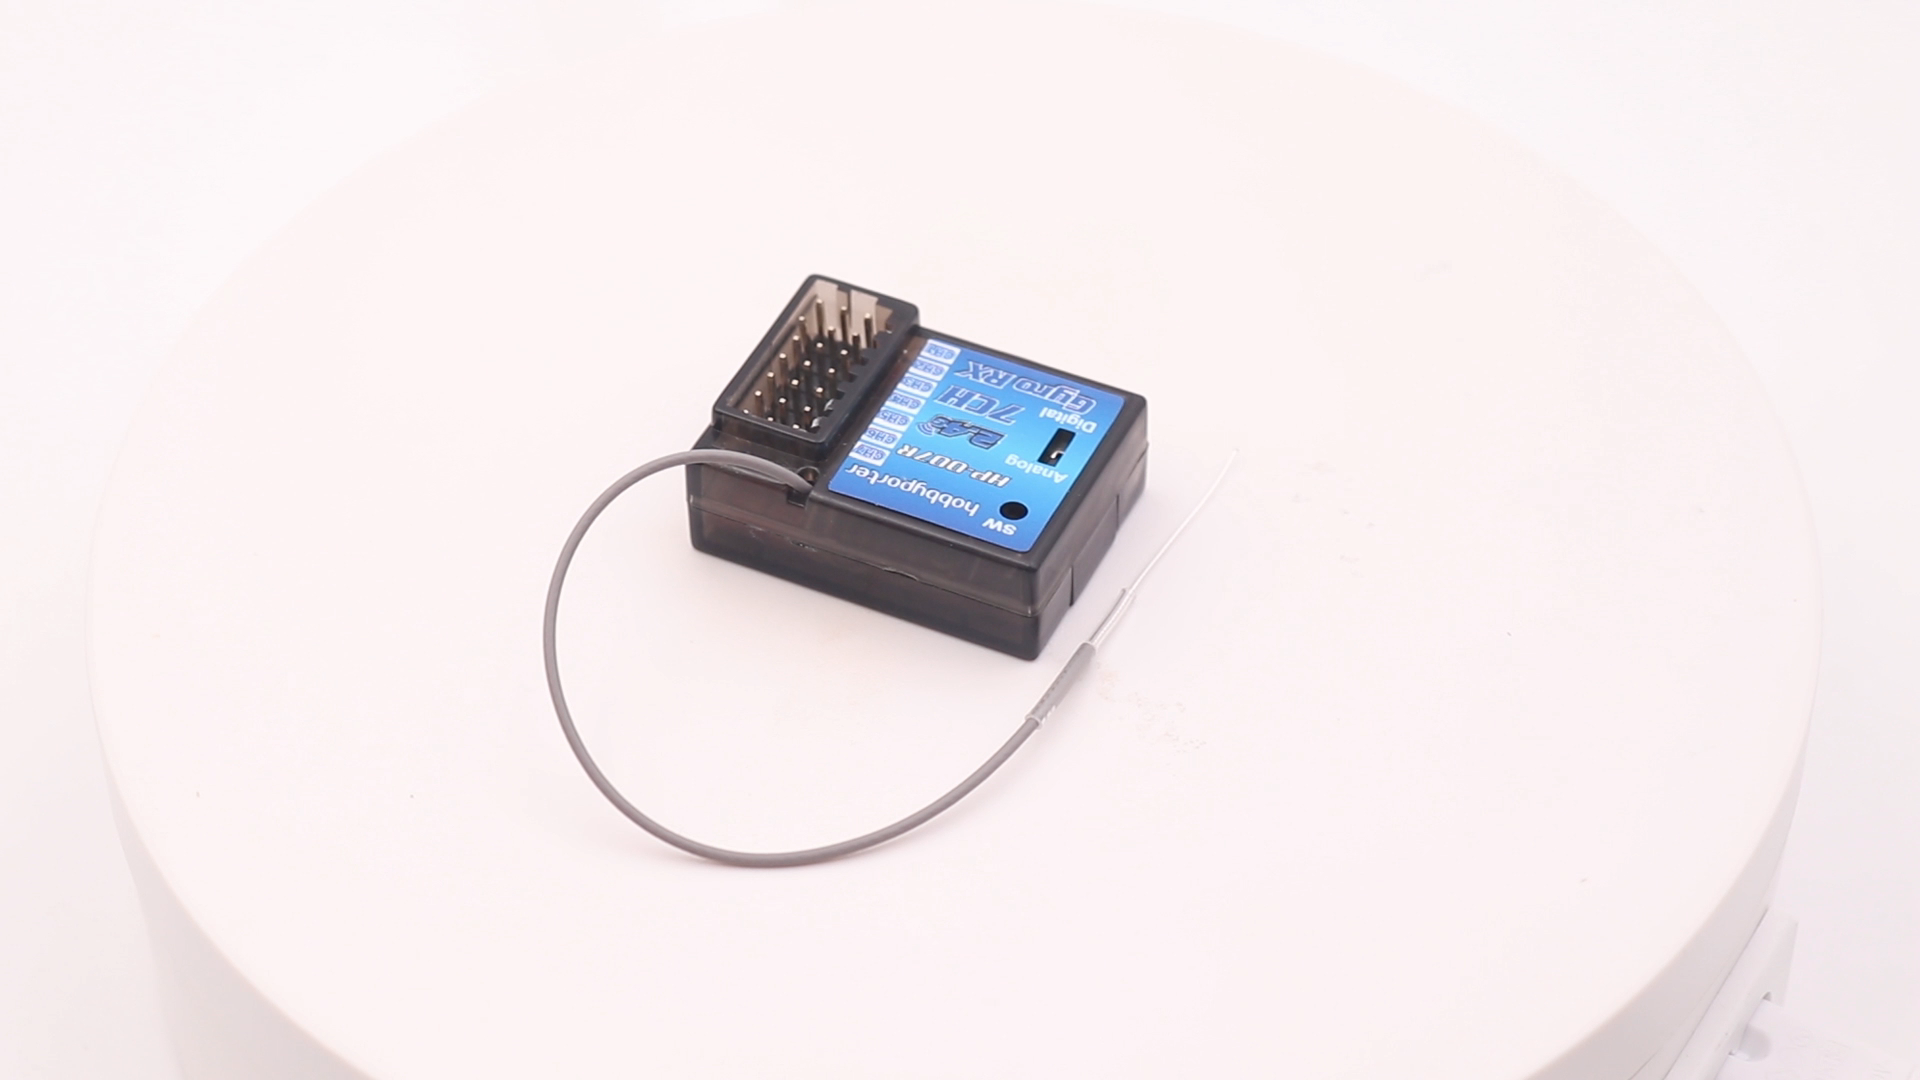 TB-RX200 7CH Digital Waterproof Receiver Only for Turbo Racing TB-TX2 Transmitter V3.1 System